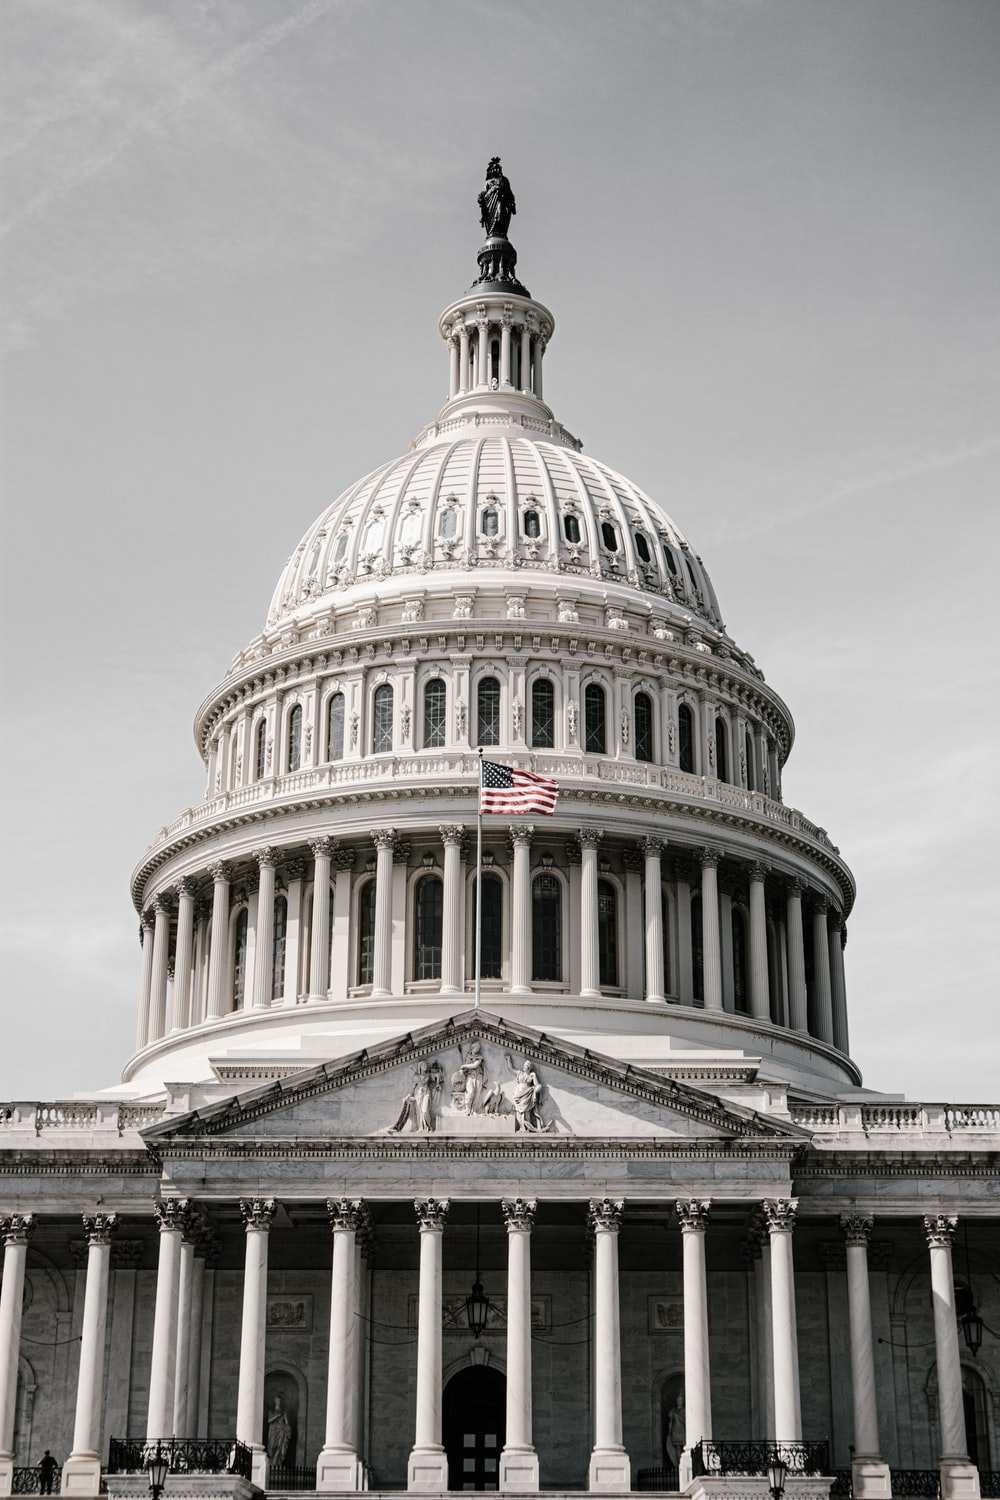 low-angle photography of a U.S. Capitol